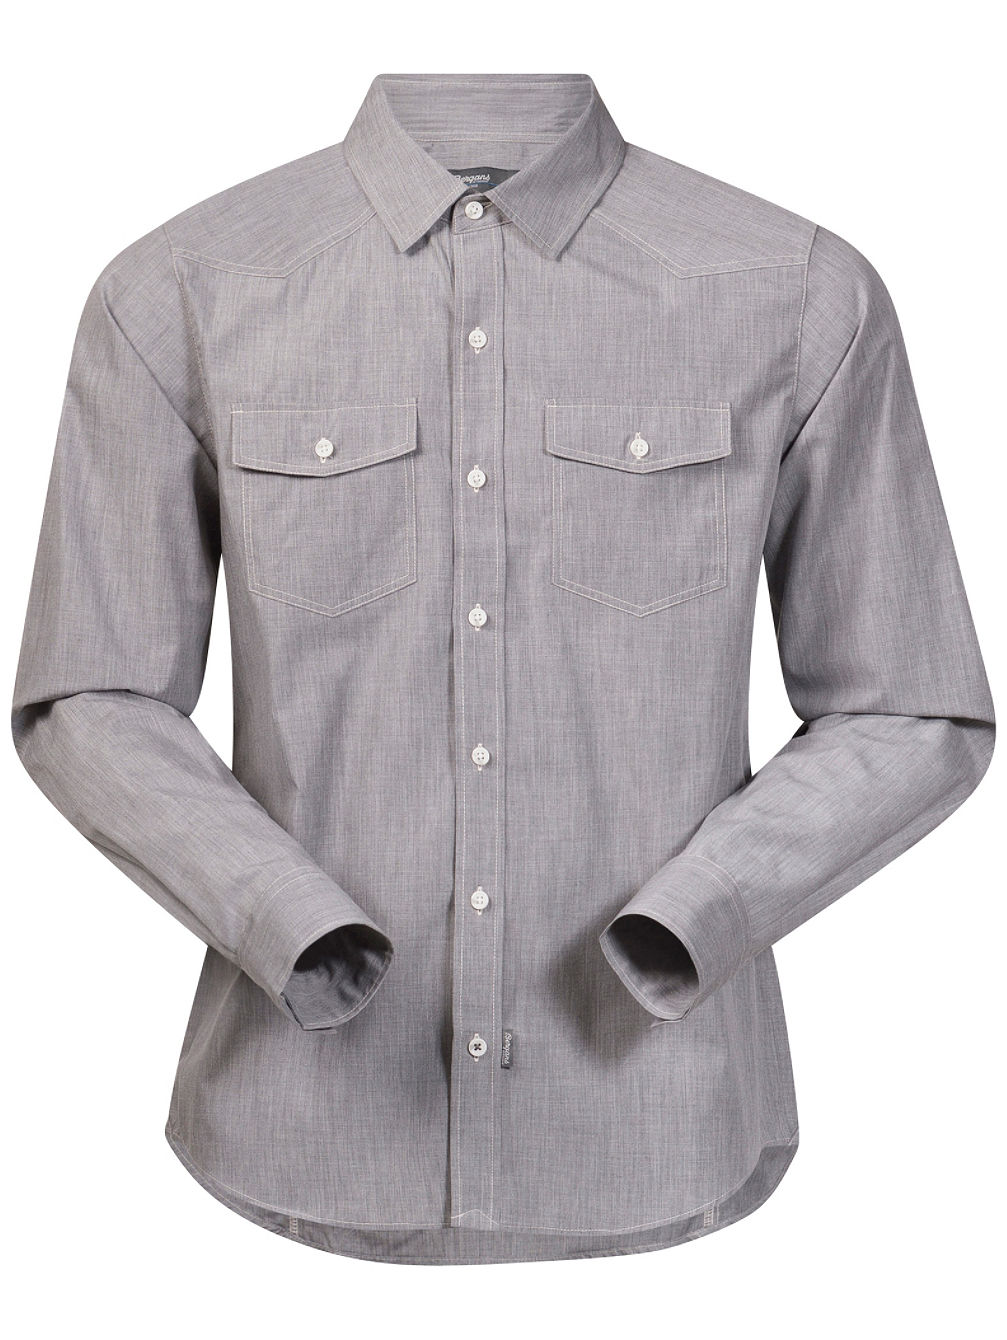 Justoy Shirt LS